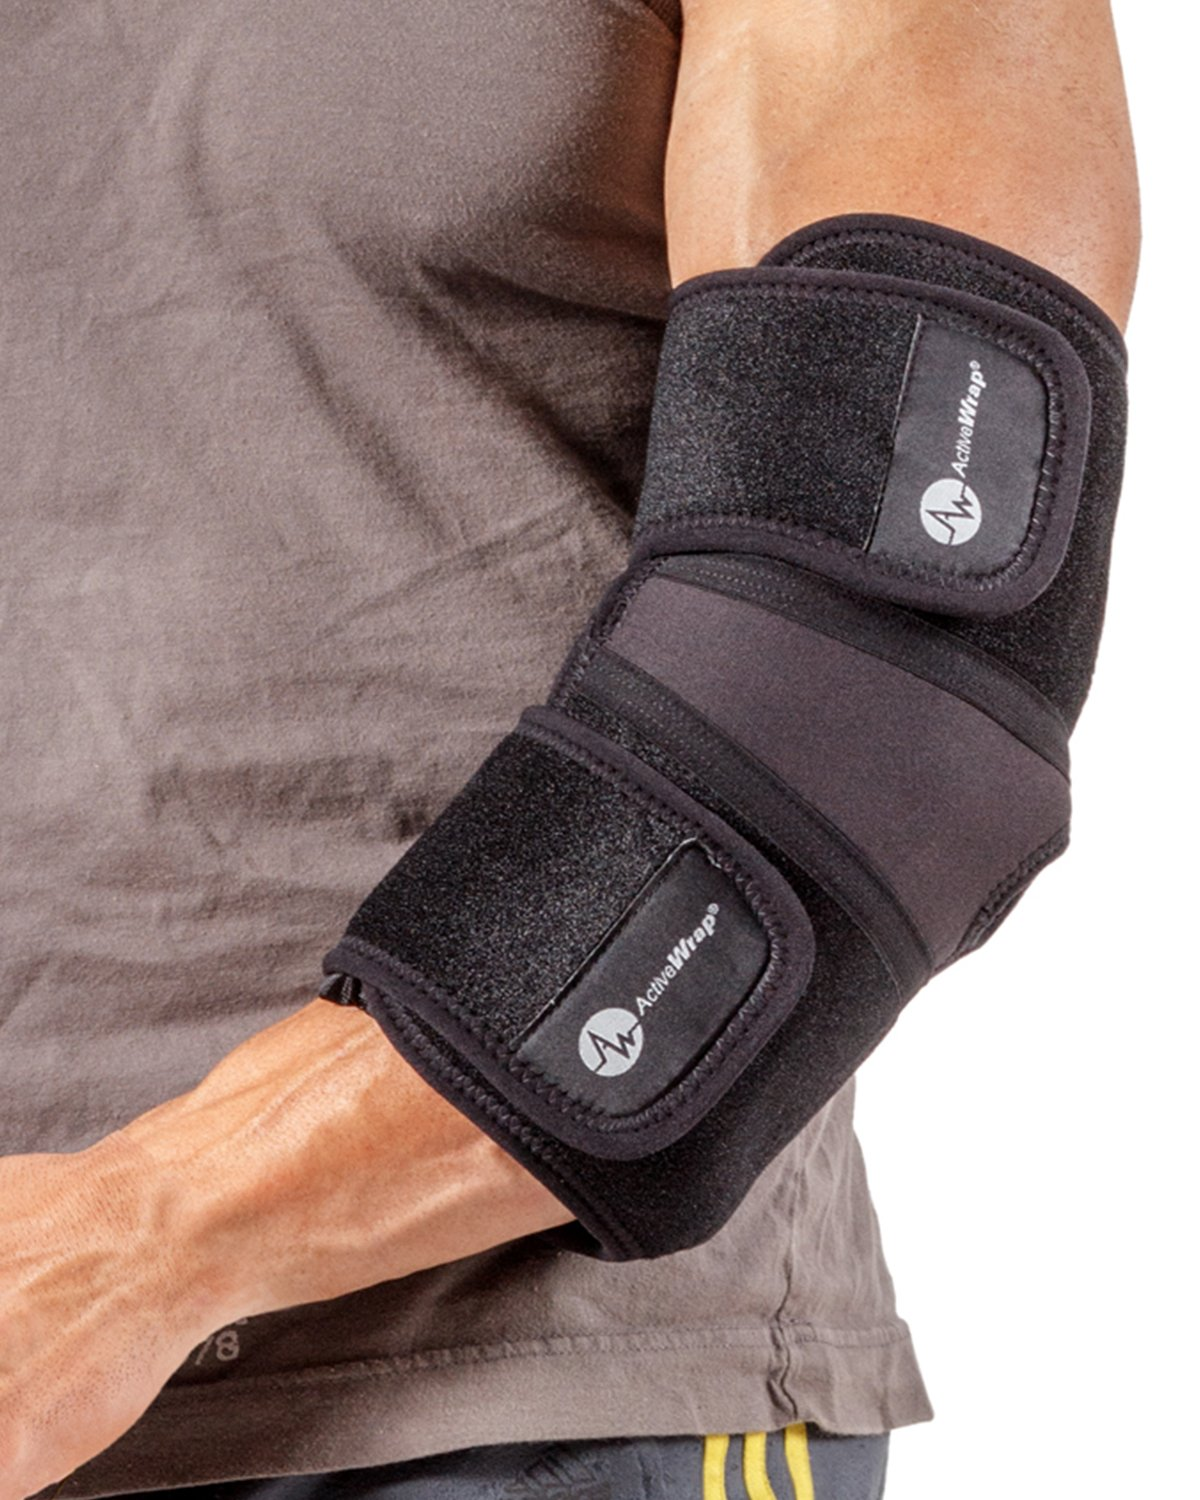 ActiveWrap Elbow Ice Wrap Hot Cold Packs for Tennis Elbow Treatment -X-Large by AW ACTIVEWRAP